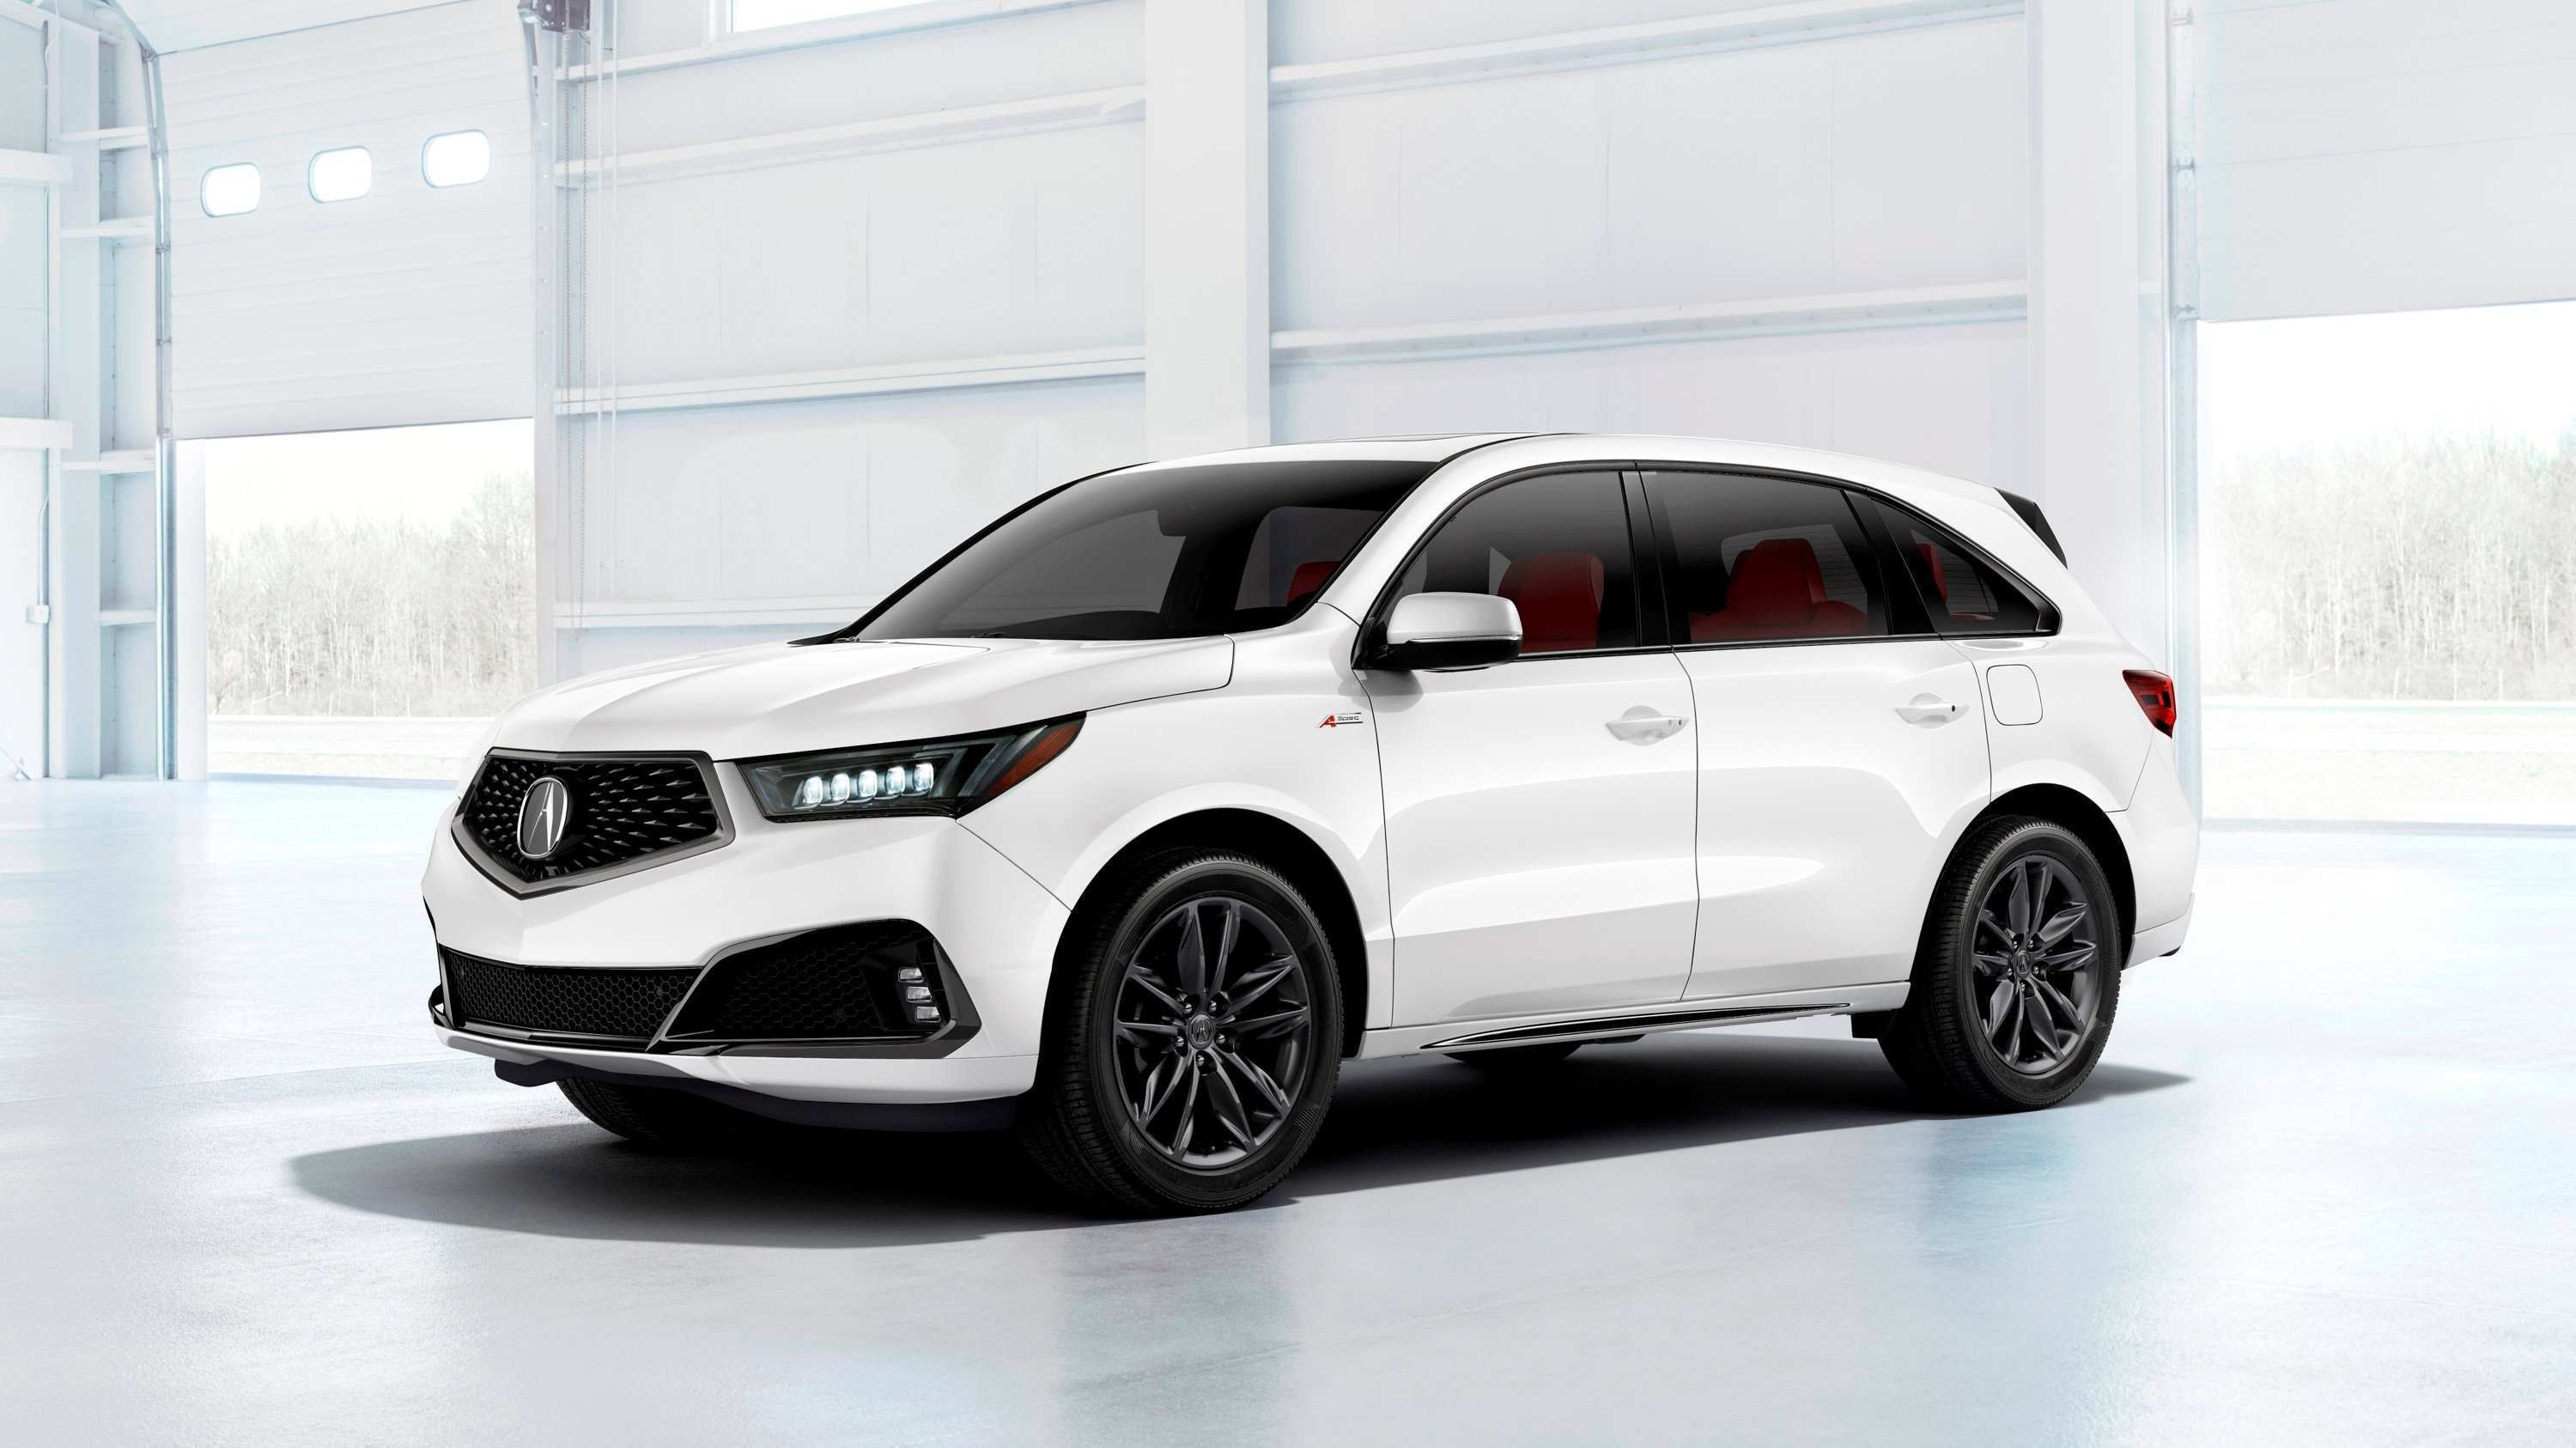 63 The 2019 Acura Tl Research New